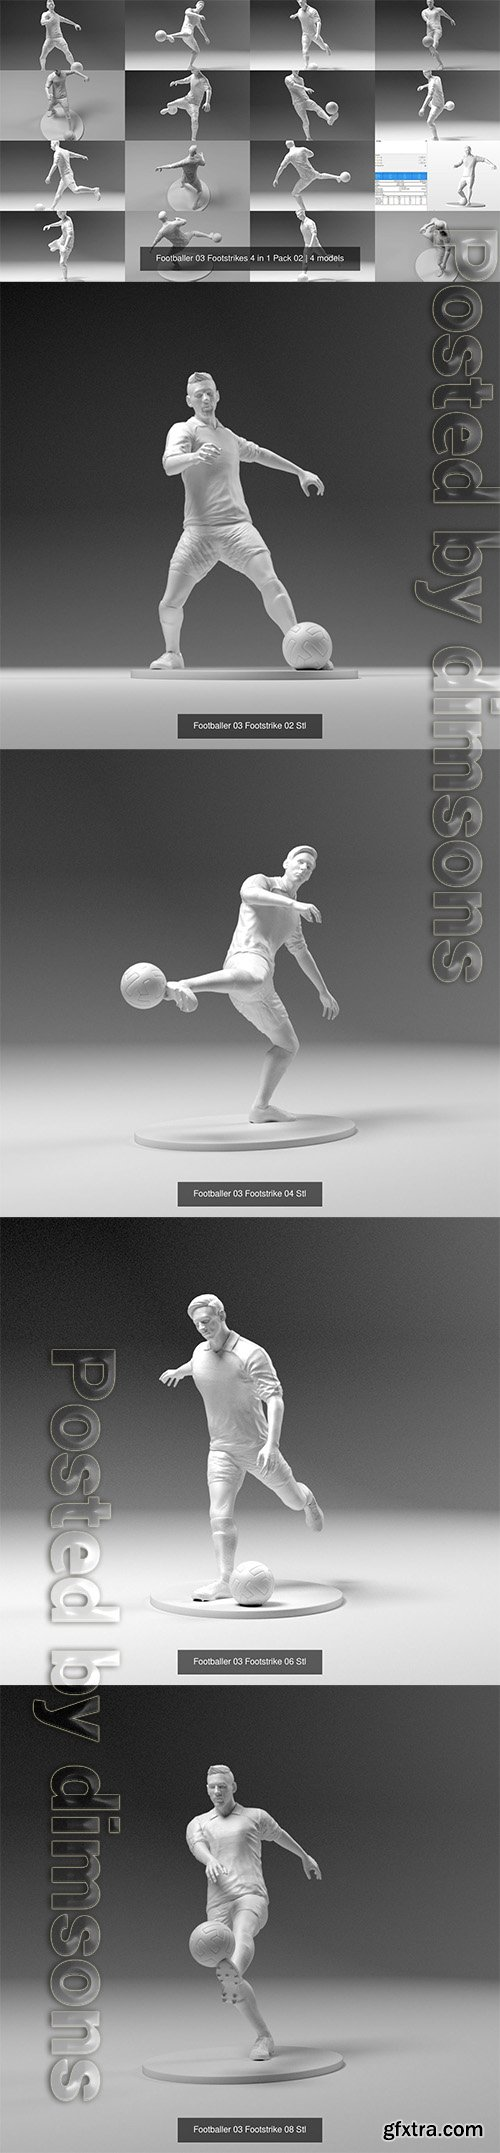 Cgtrader - Footballer 03 Footstrikes 4 in 1 Pack 02 3D Model Collection